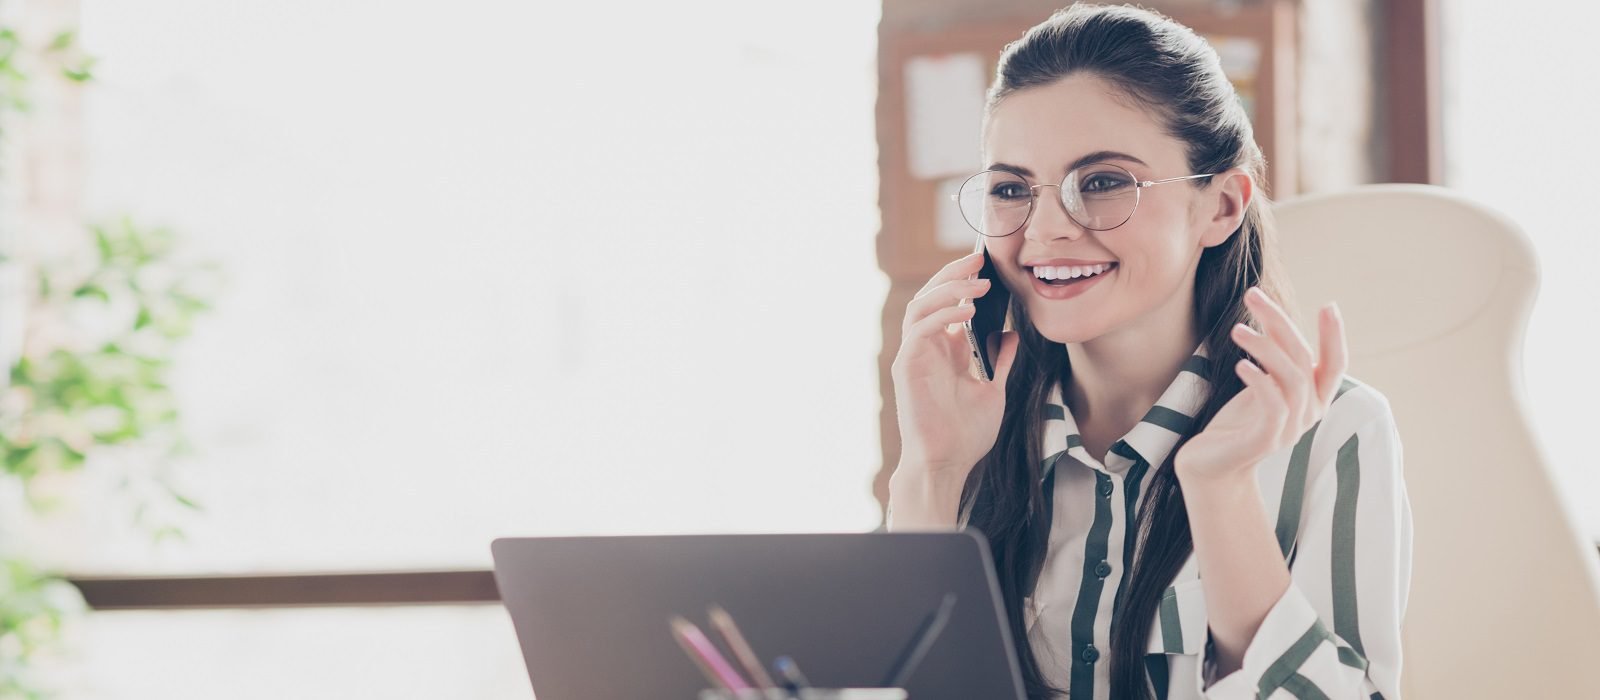 Close-up portrait of her she nice attractive smart clever cheerful cheery girl leader partner company founder talking on phone at modern brick, loft industrial interior style workplace workstation